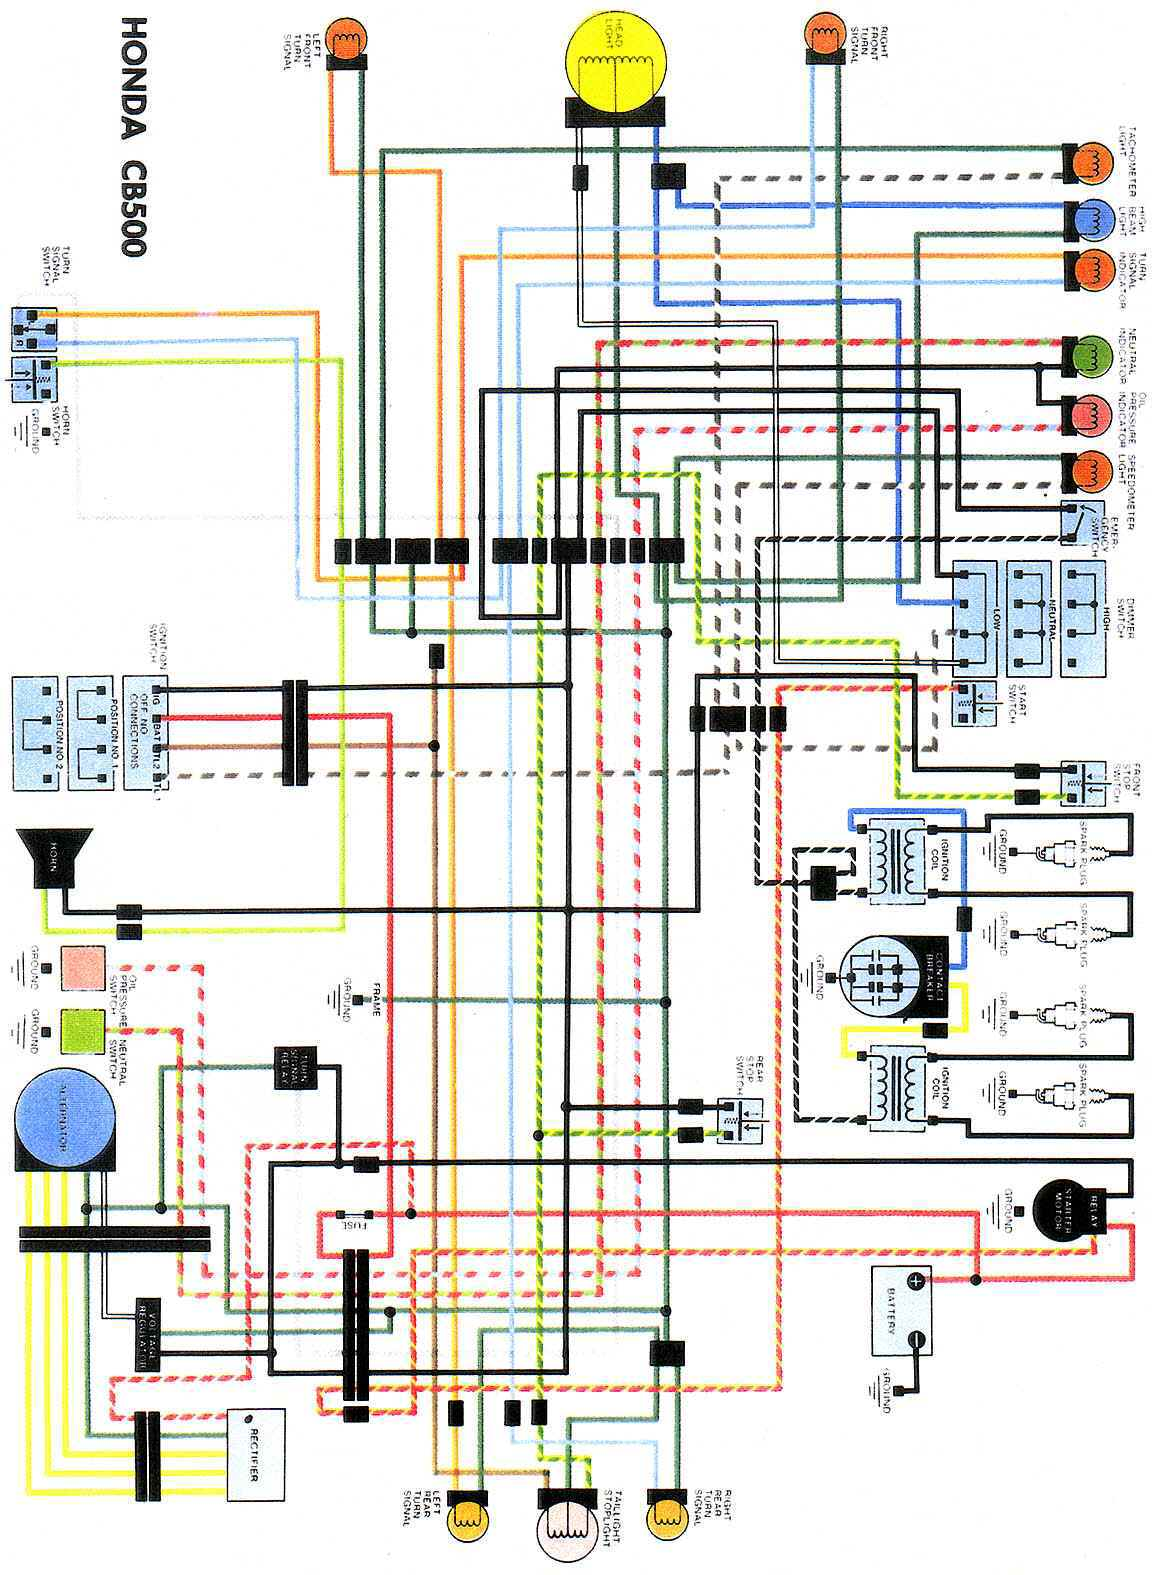 Suzuki Savage 650 Wiring Diagram Starting Know About Wiring Diagram \u2022  Suzuki Savage Wiring Diagram Suzuki Ls650 Wiring Diagram